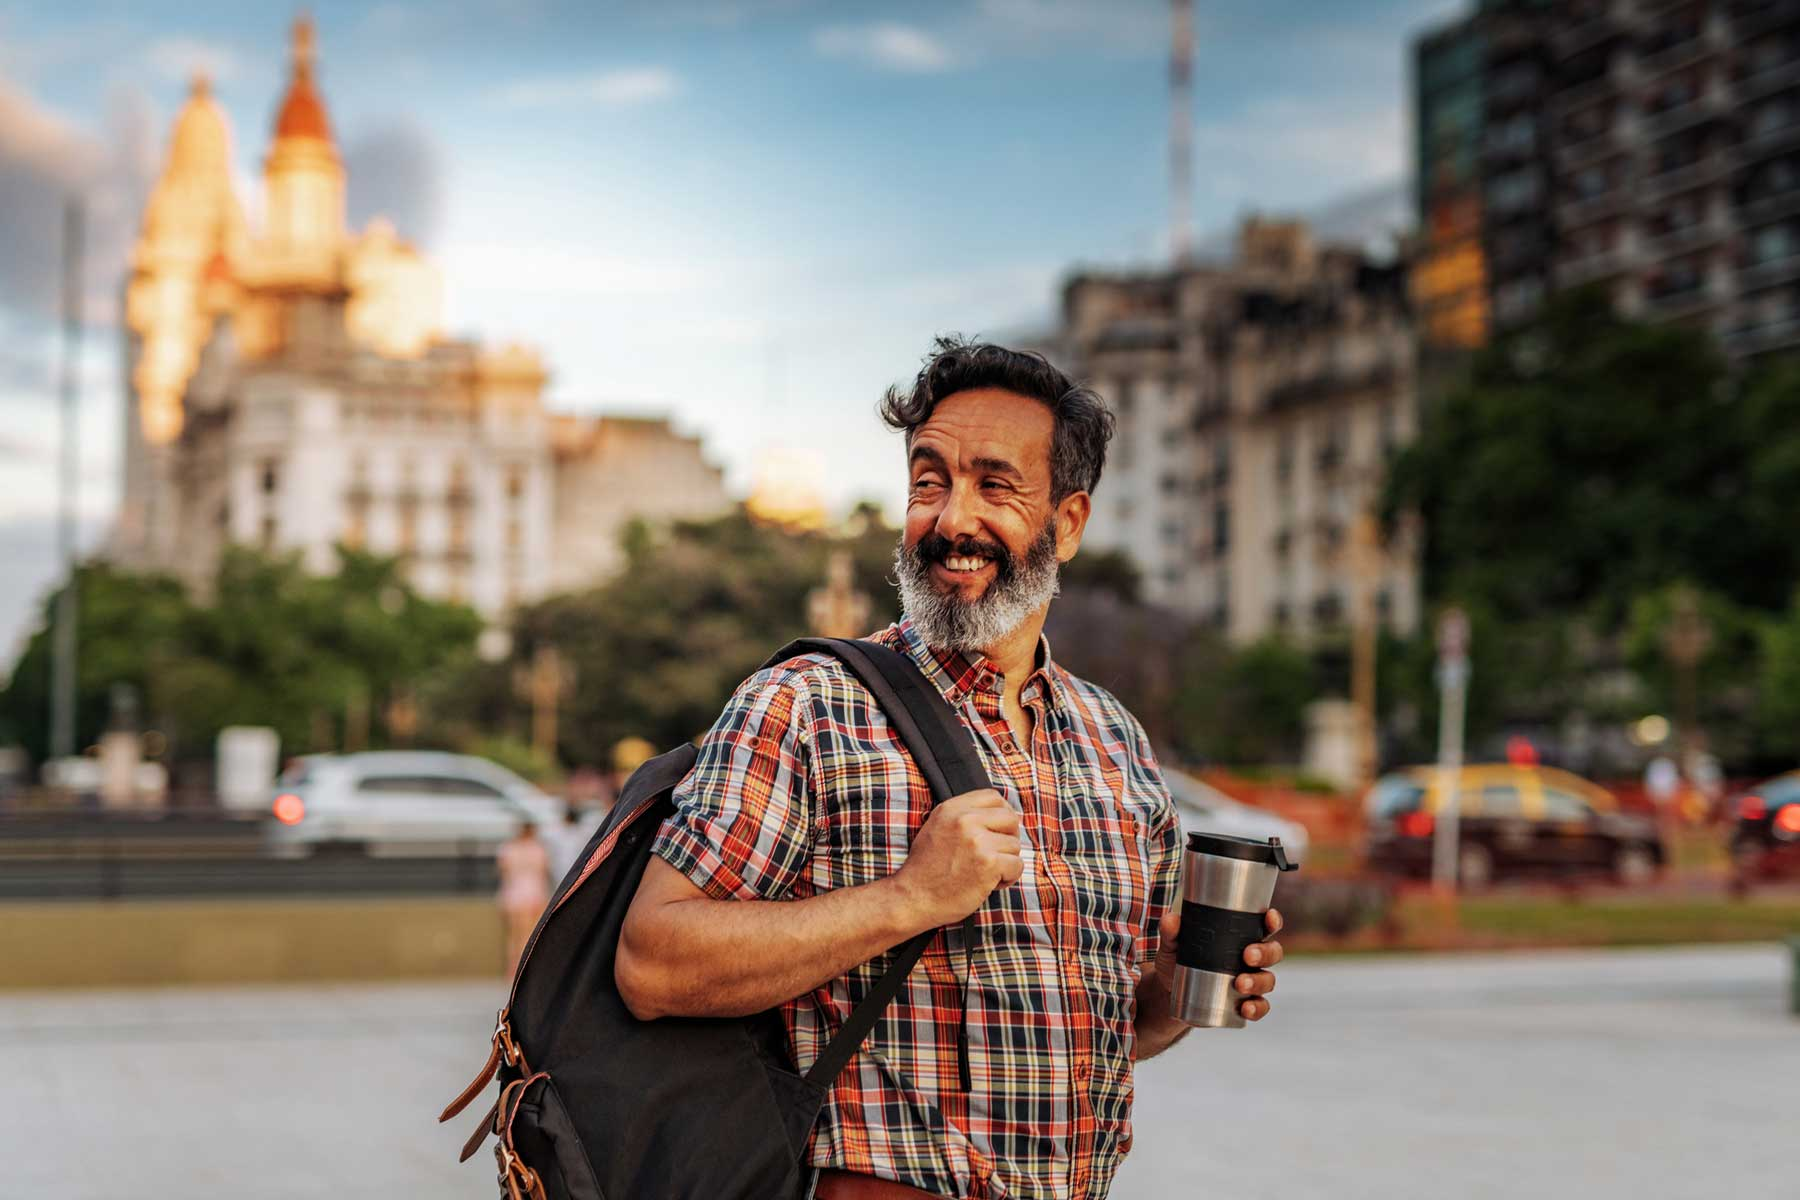 Mature Latino man with beard and stylish casual clothing in springtime day in Buenos Aires, Argentina.